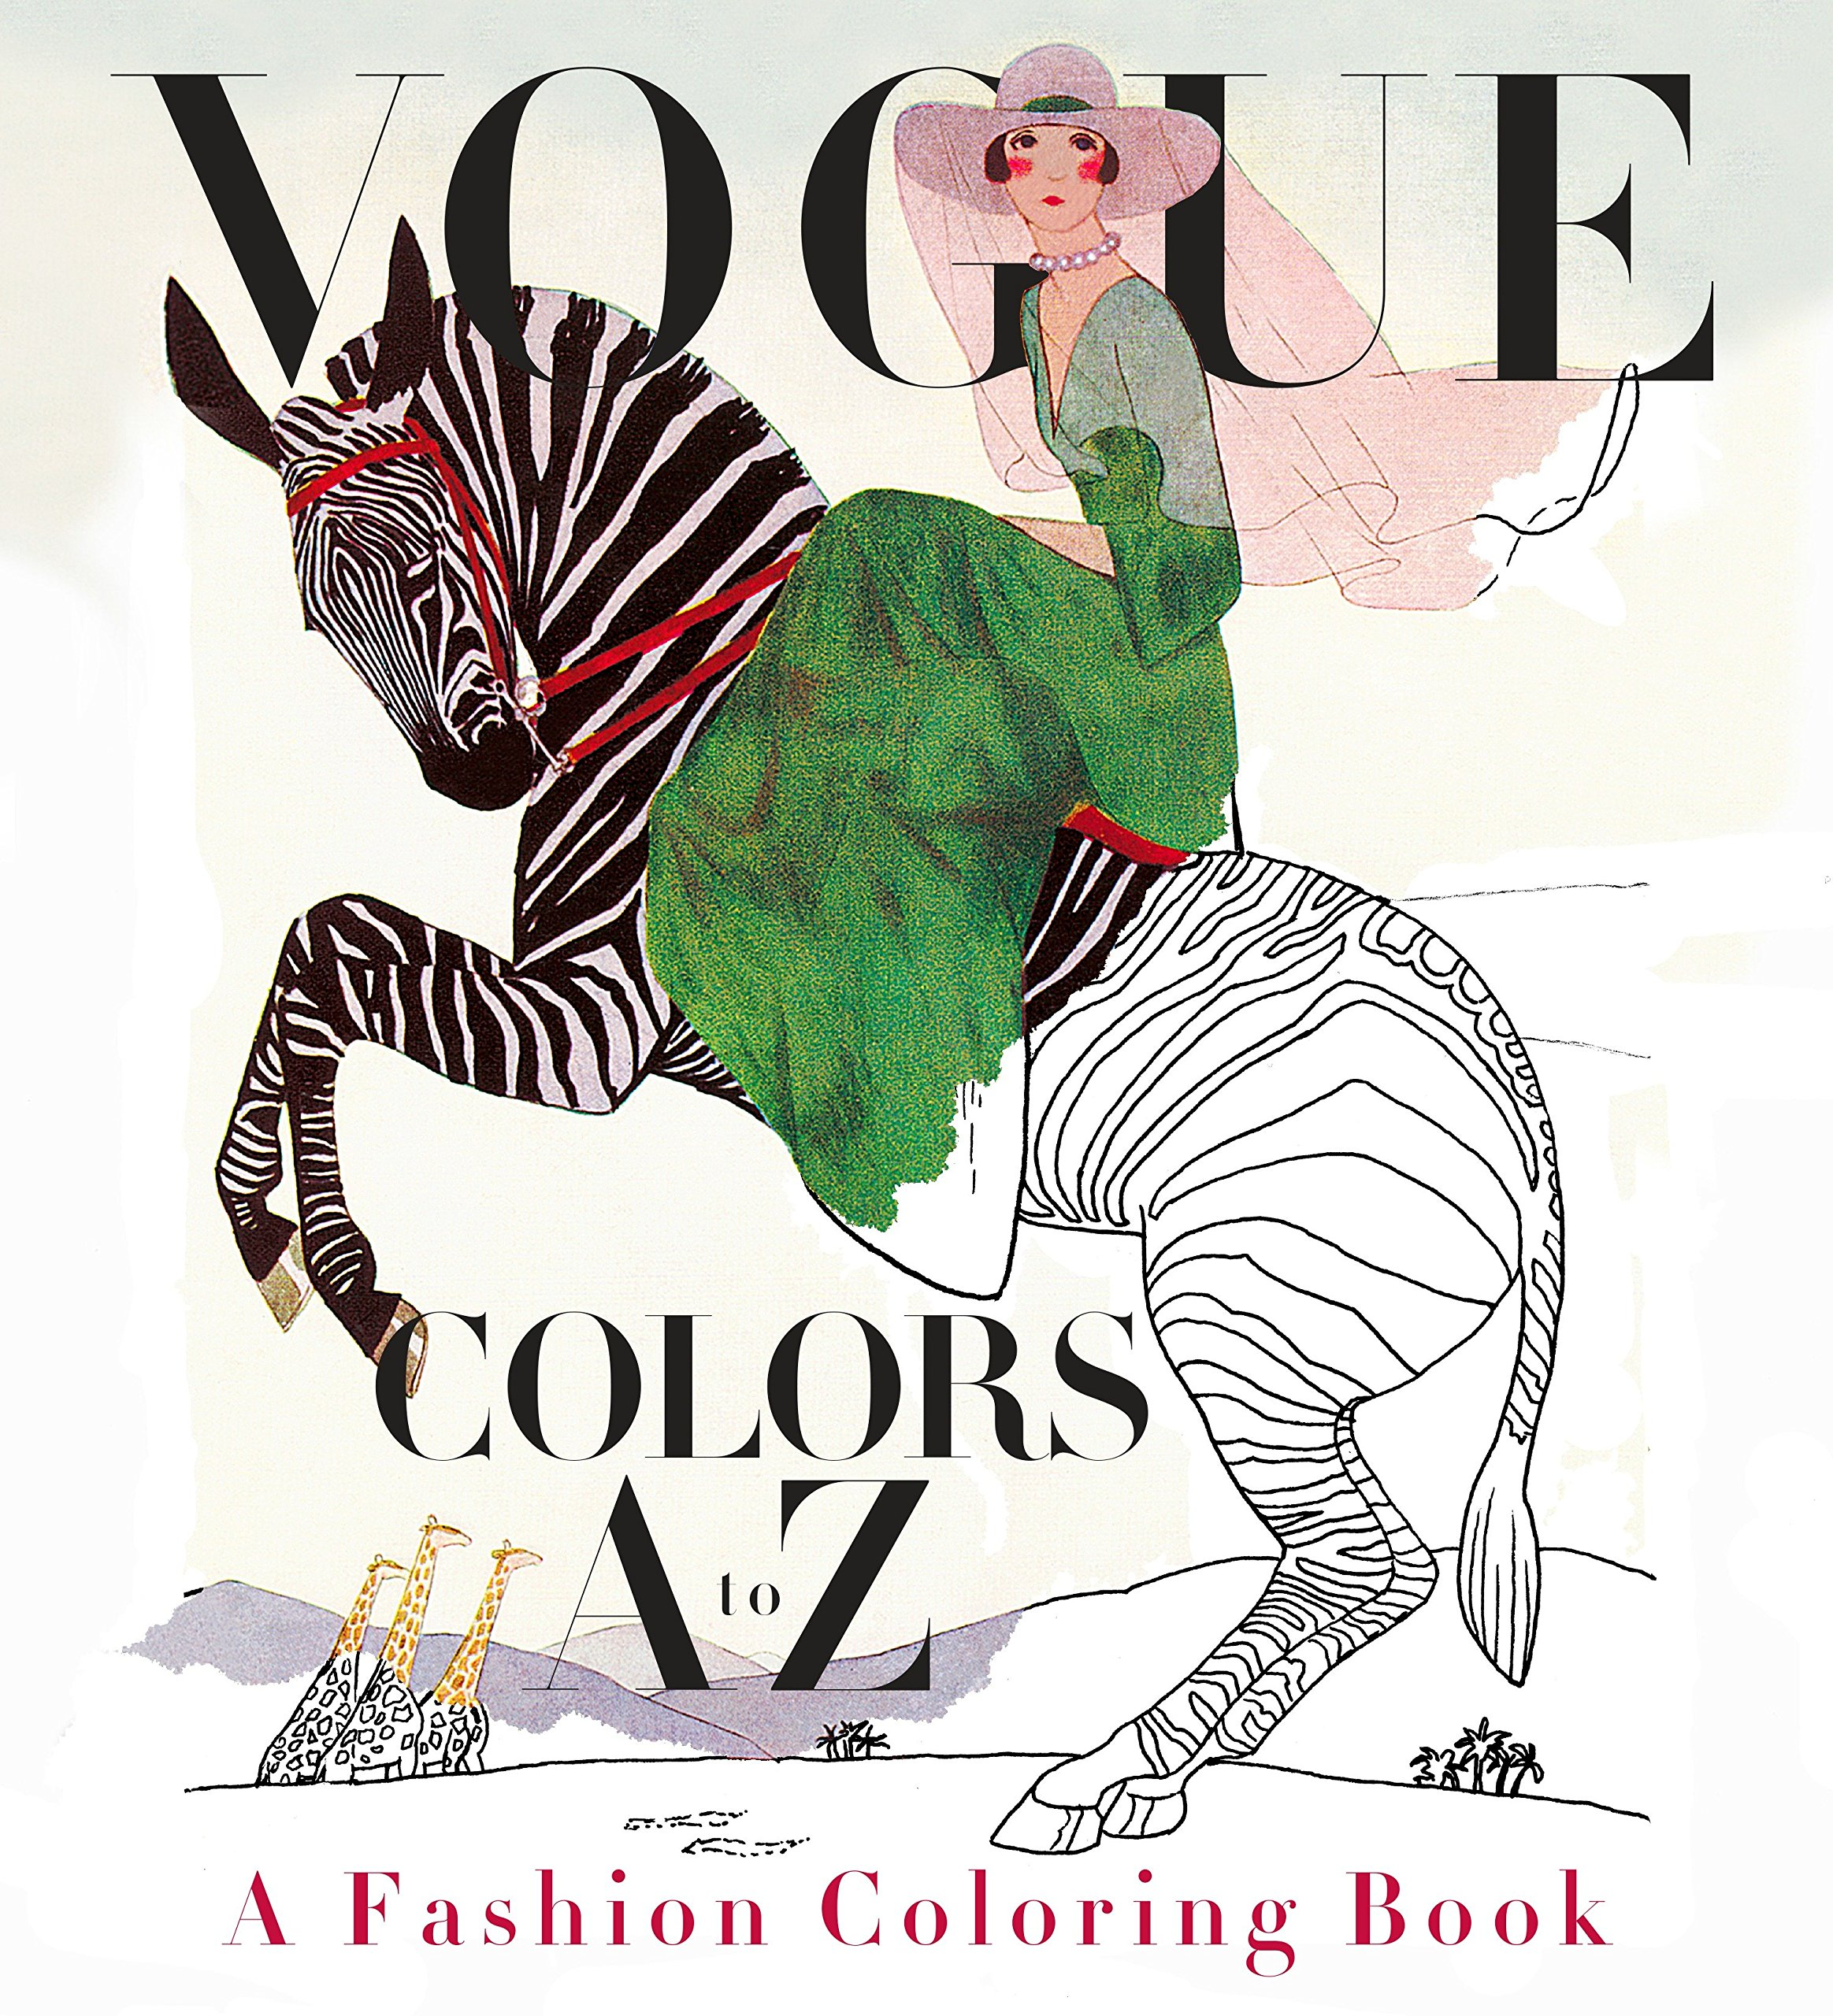 Vogue Colors A to Z: A Fashion Coloring Book, fashion blogger tips articles, what to do in quarantine, style tips and tricks every girl, black fashion blogger inspiration